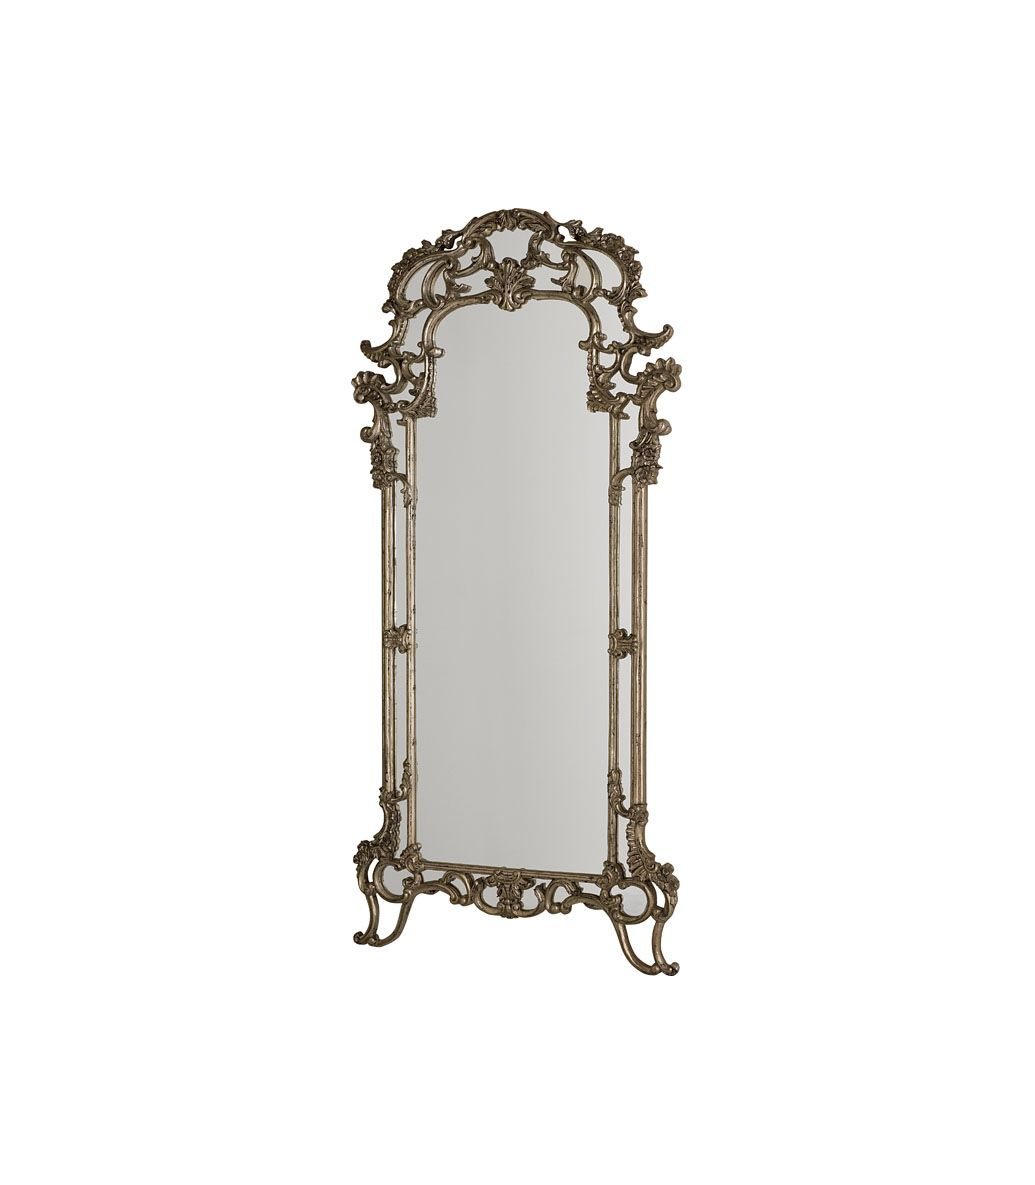 Jessica mcclintock by american drew 39 the boutique for Silver framed floor mirror